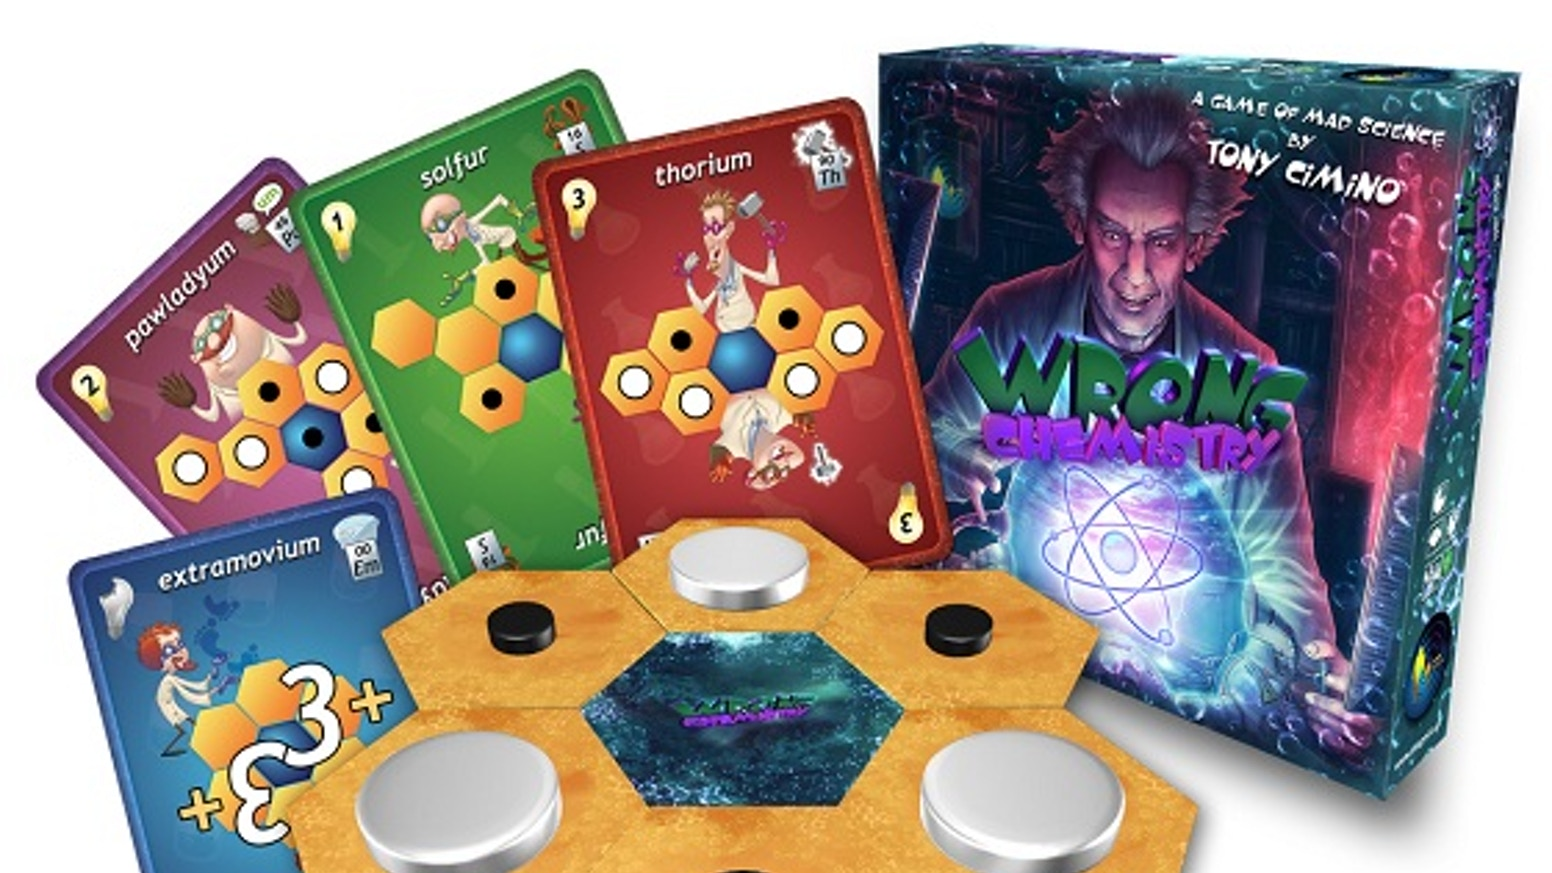 The Mad Scientists are out and decided to alter the nature of the elements. Prepare yourself for a Game of Mad Science!